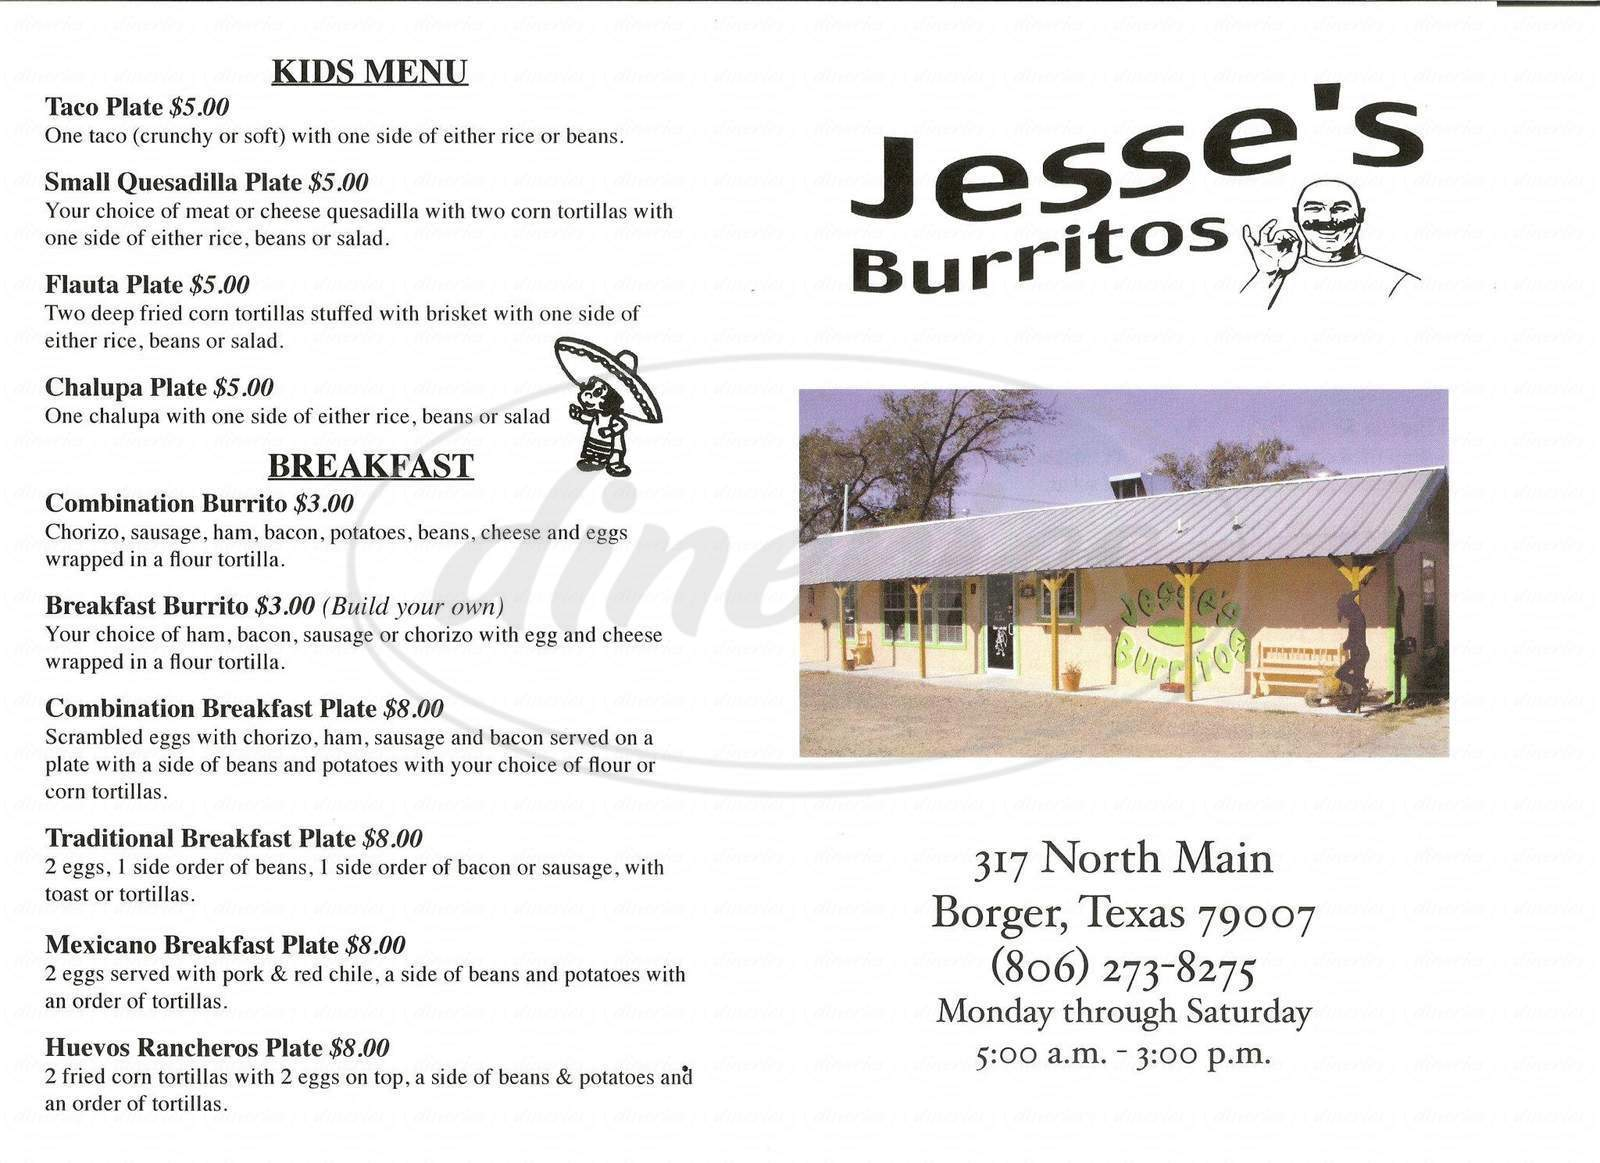 menu for Jesse's Burritos